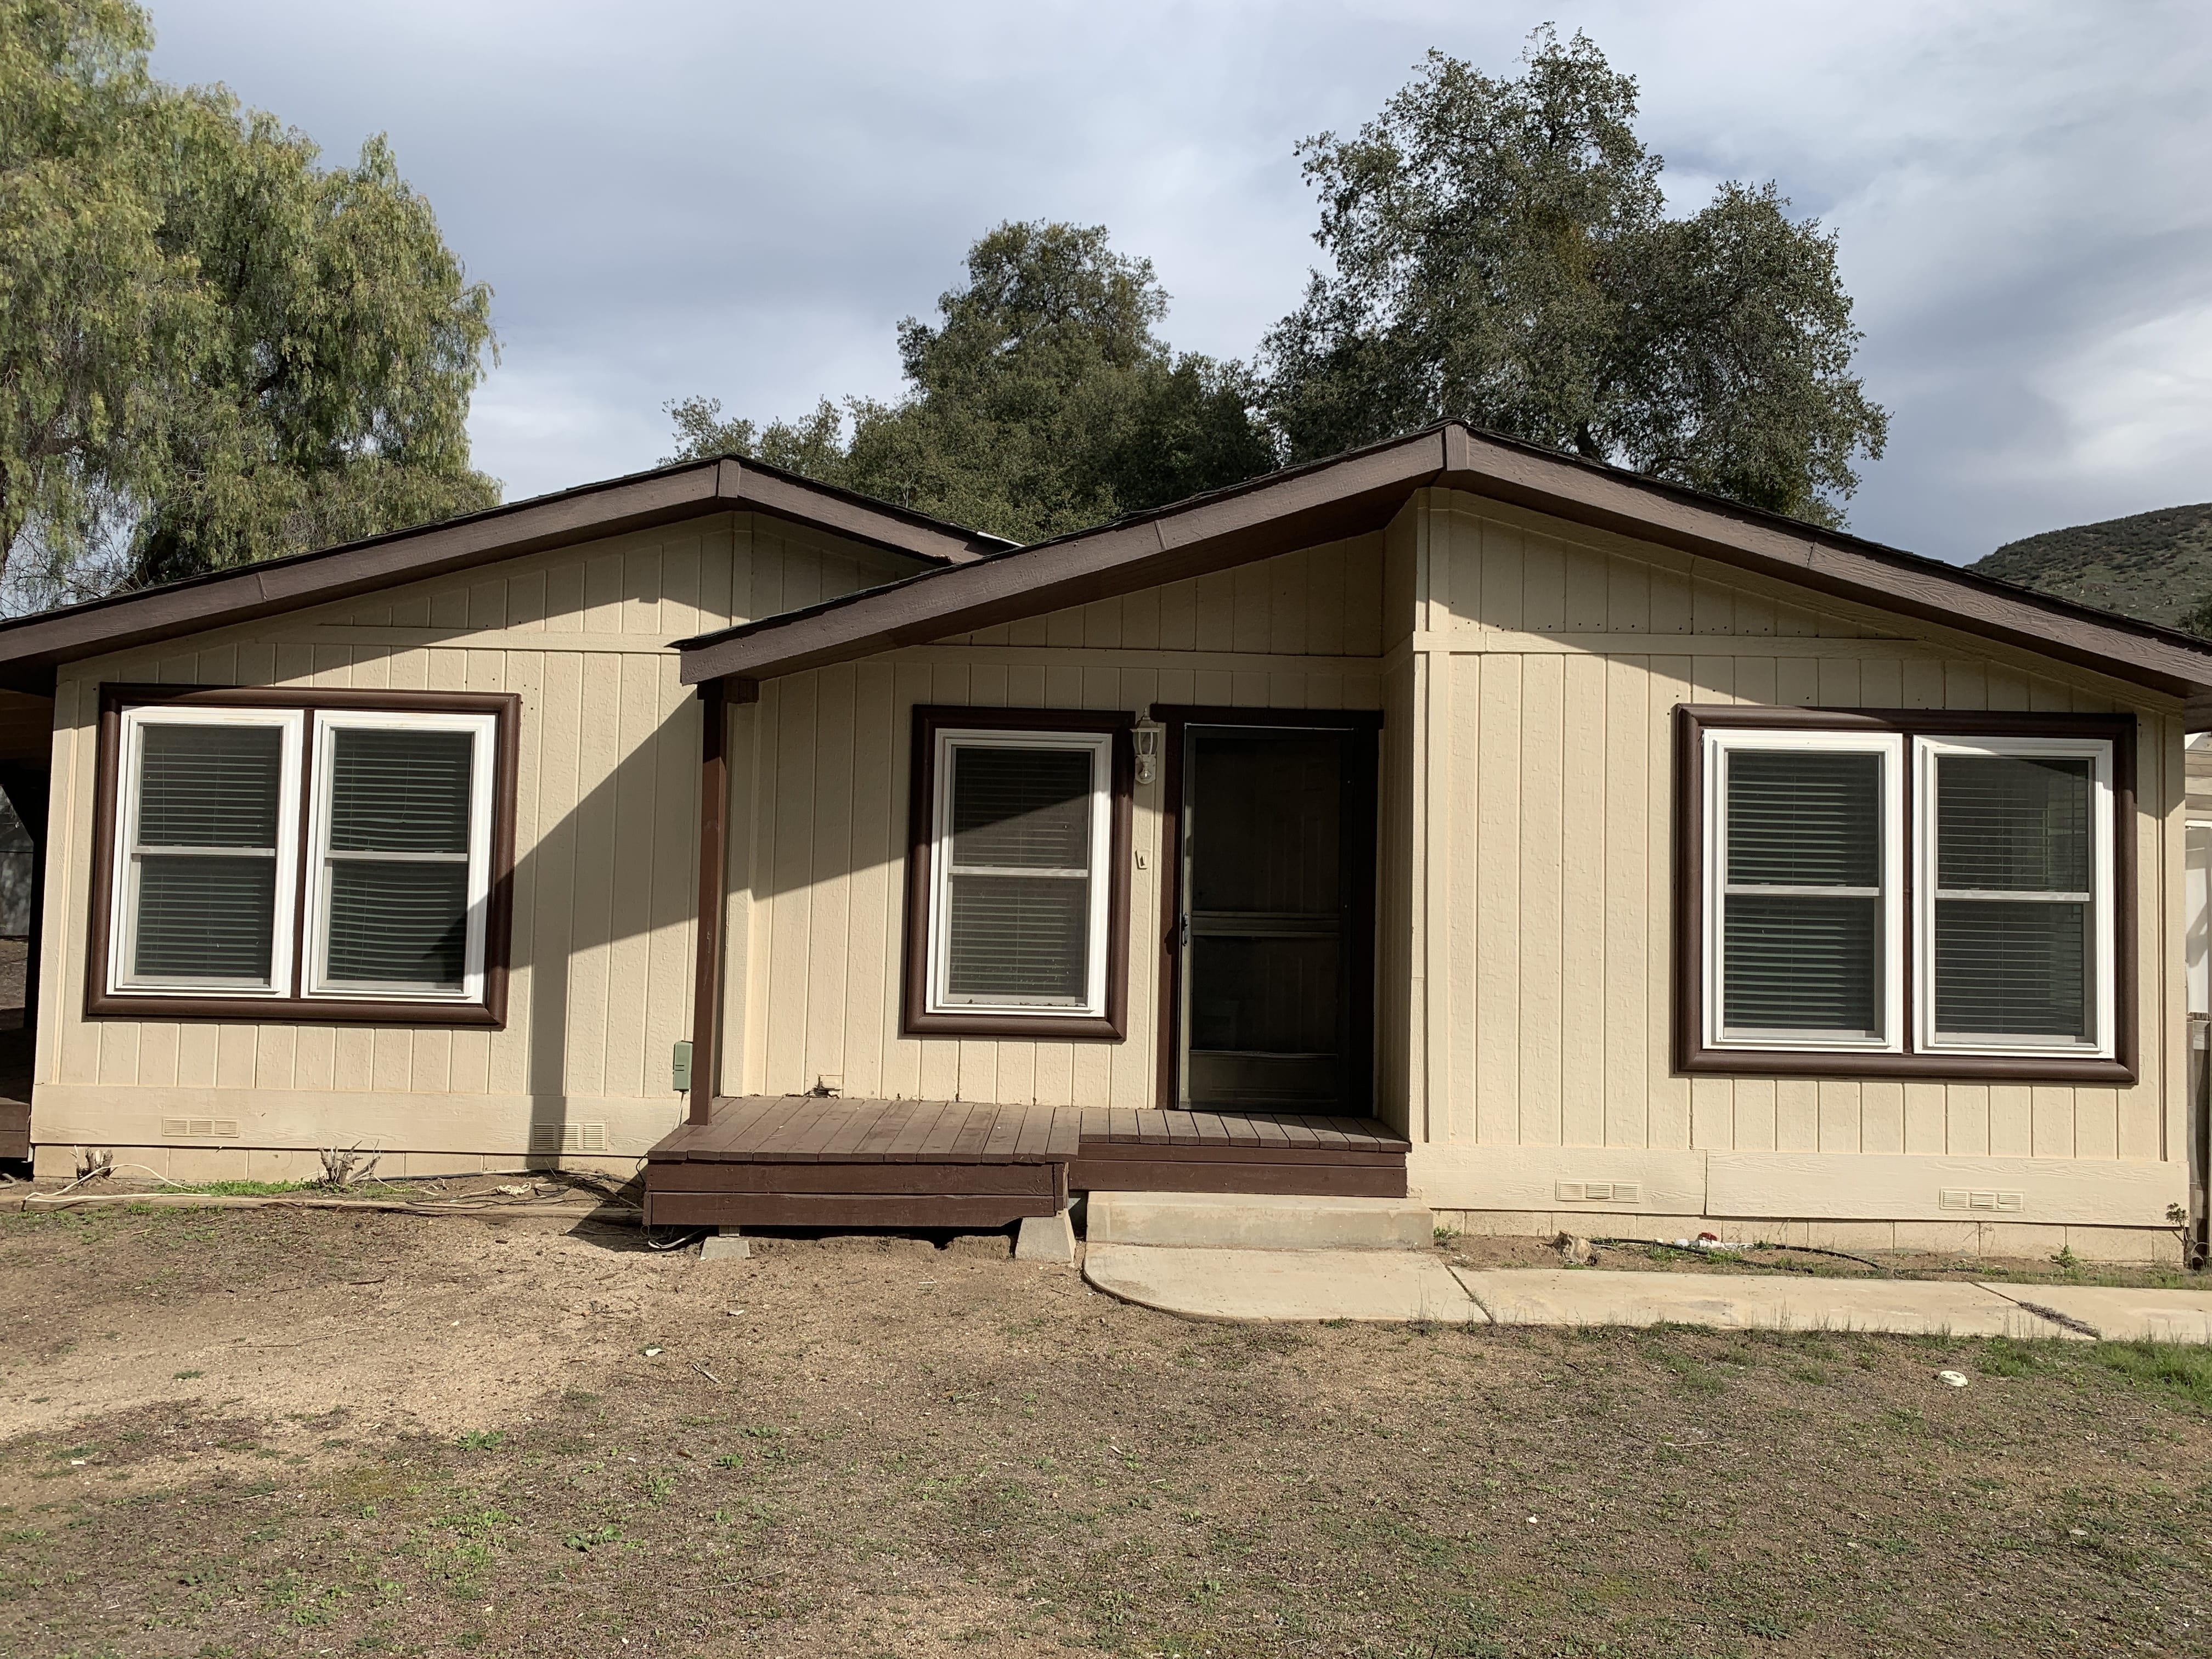 Online Auction: Single Family Home (34500 Barranca Road) In Temecula, California